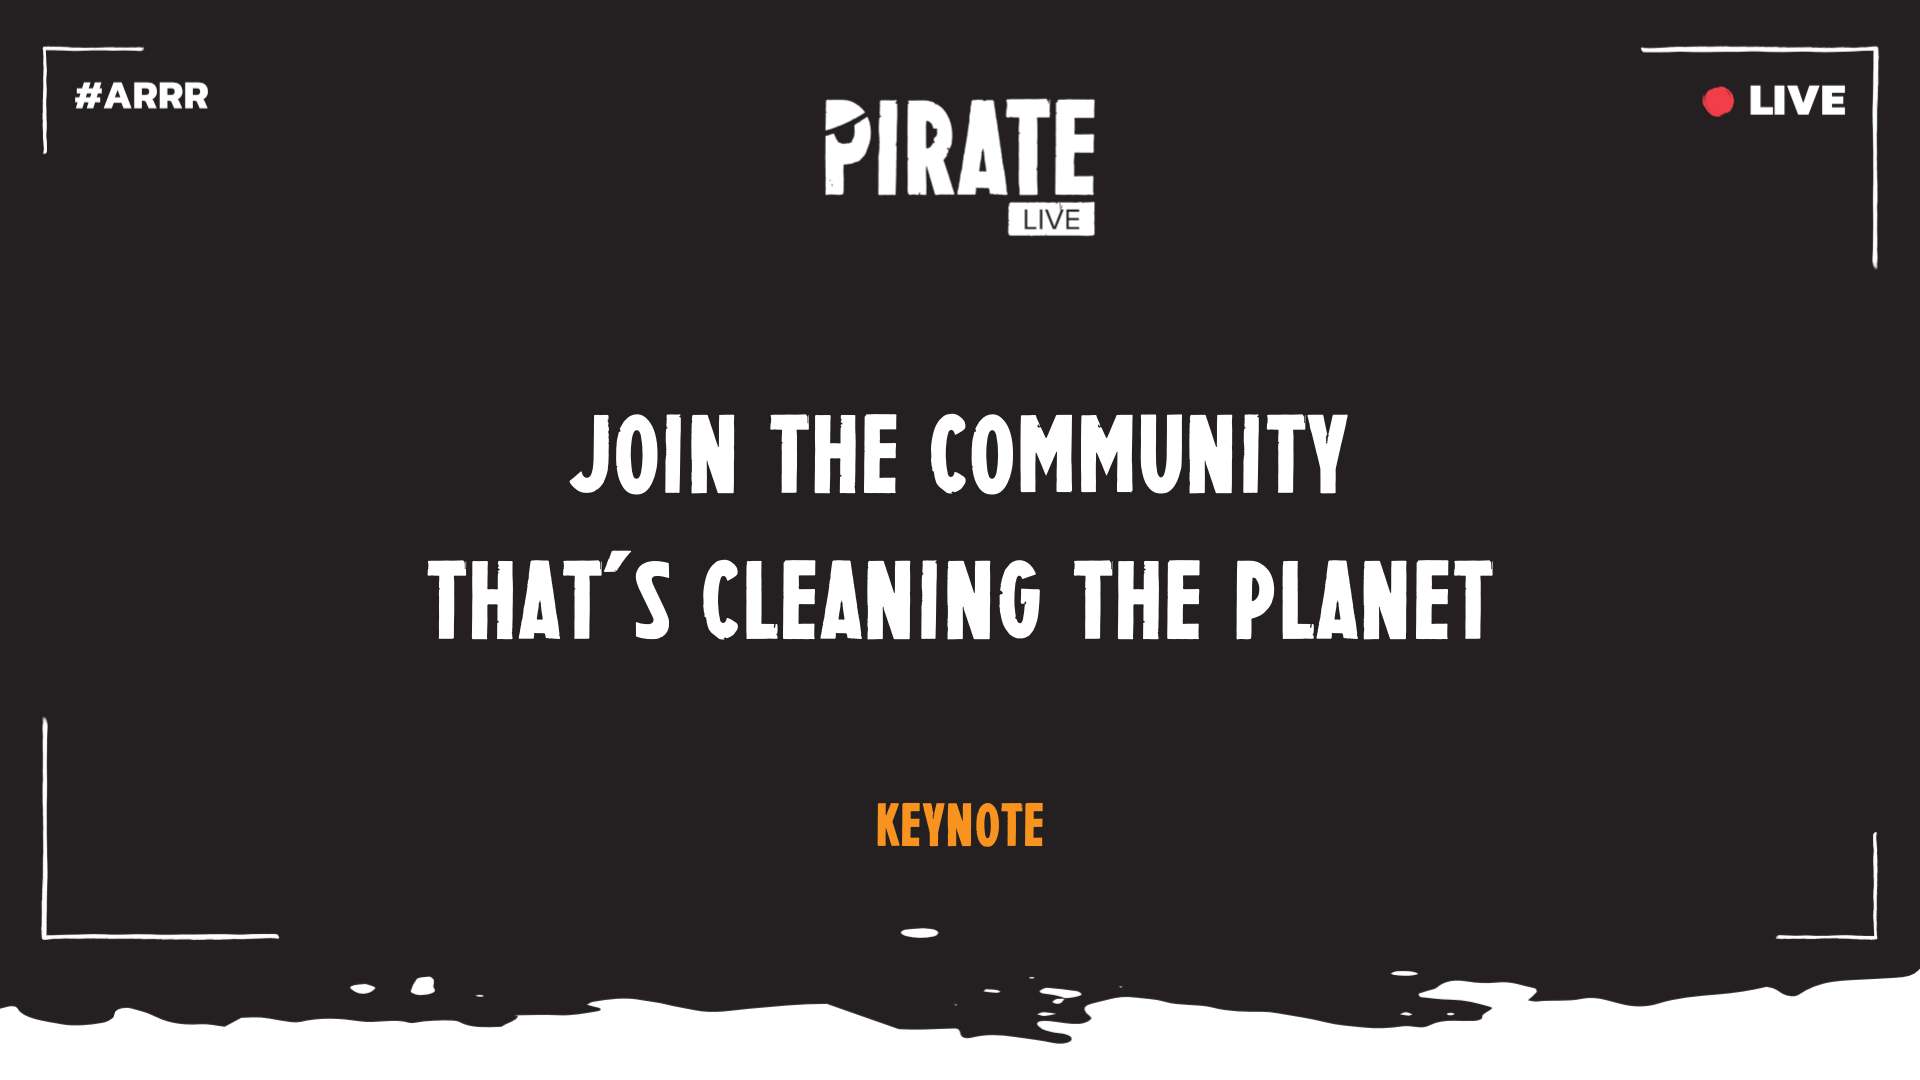 Join the community that's cleaning the planet